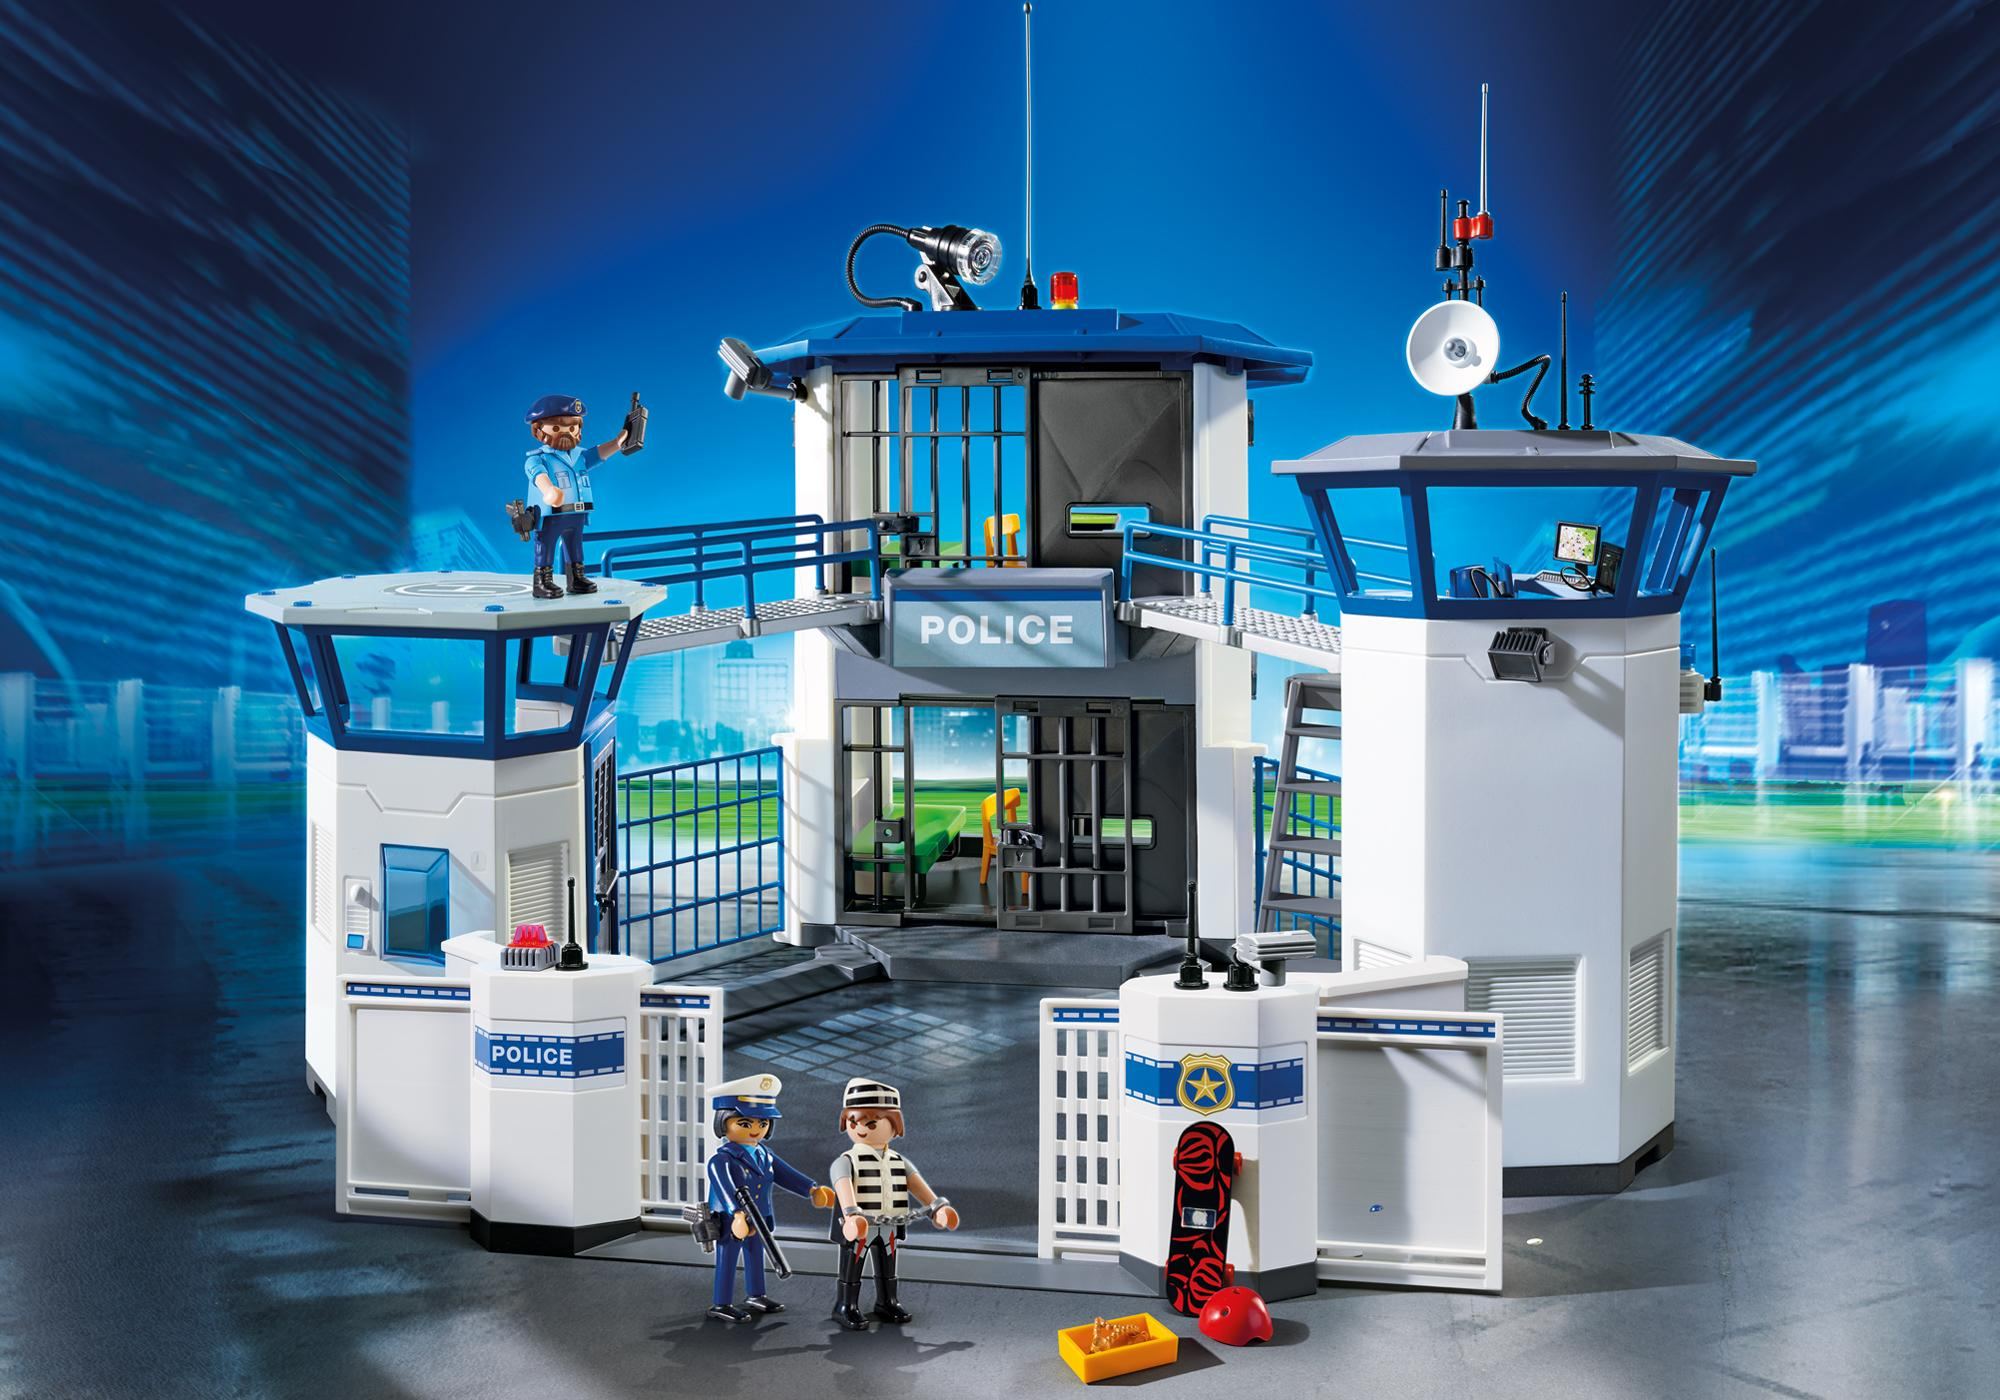 http://media.playmobil.com/i/playmobil/6919_product_detail/Police Headquarters with Prison